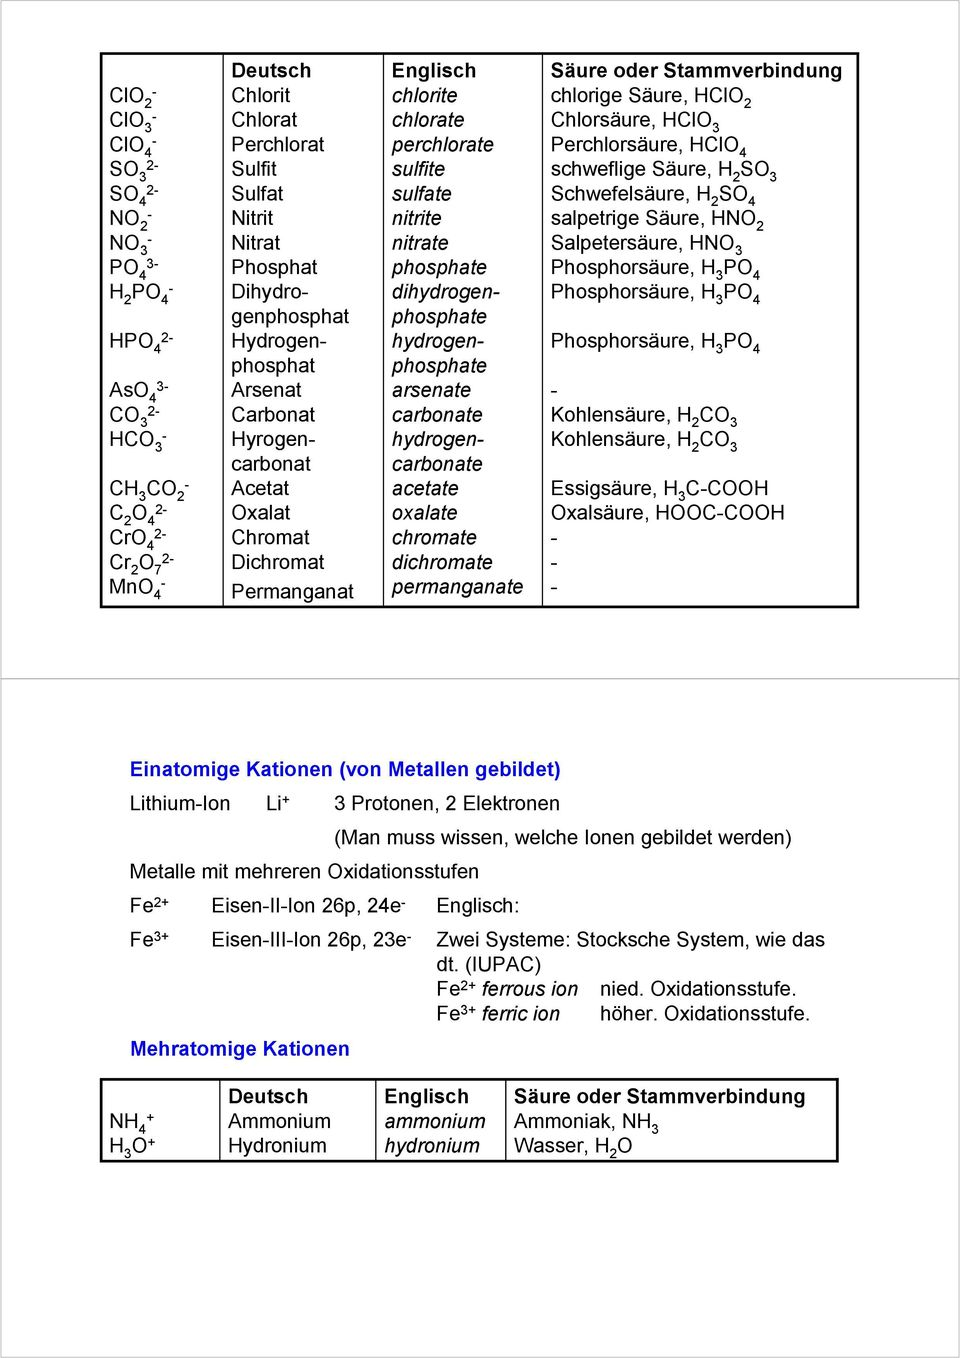 arsenate carbonate hydrogencarbonate acetate oxalate chromate dichromate permanganate Säure oder Stammverbindung chlorige Säure, HCl 2 Chlorsäure, HCl 3 Perchlorsäure, HCl schweflige Säure, H 2 S 3